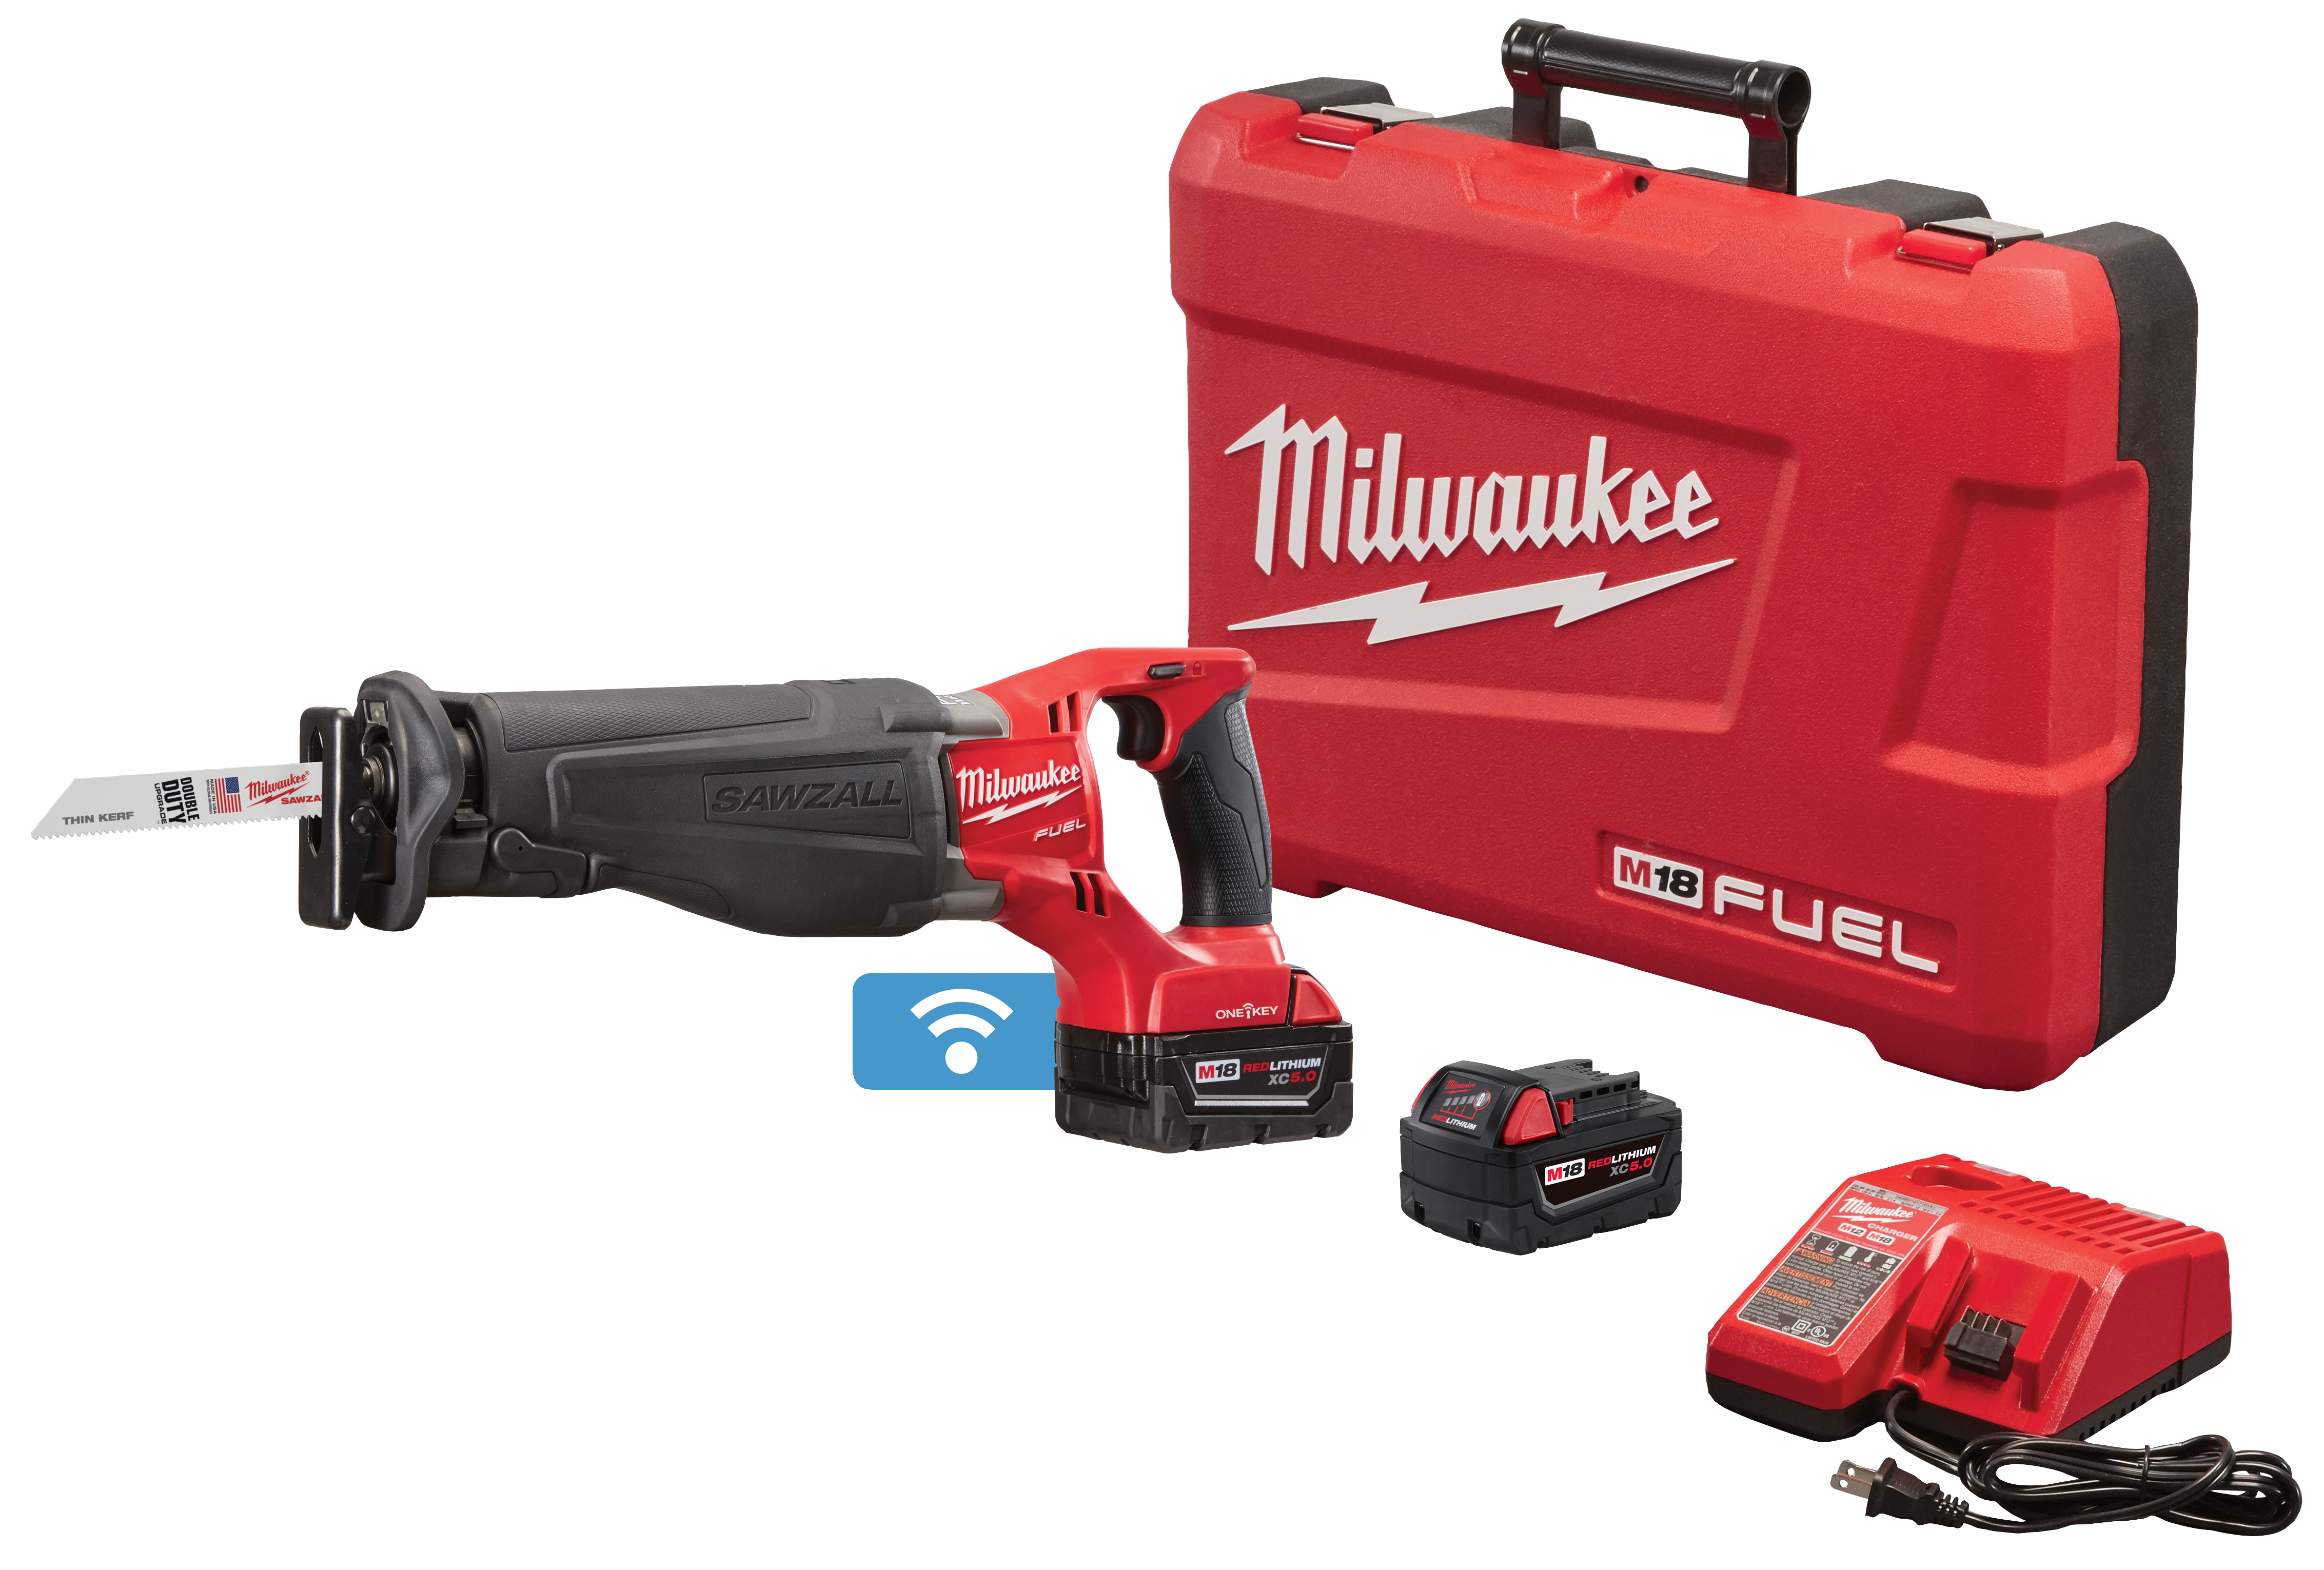 Milwaukee® M18™ FUEL™ SAWZALL™ 2721-22 Adjustable Shoe Anti-Vibration Cordless Reciprocating Saw Kit With One-Key™, 1-1/8 in L Stroke, 0 to 3000 spm, Straight Cut, 18 VDC, 17-3/4 in OAL